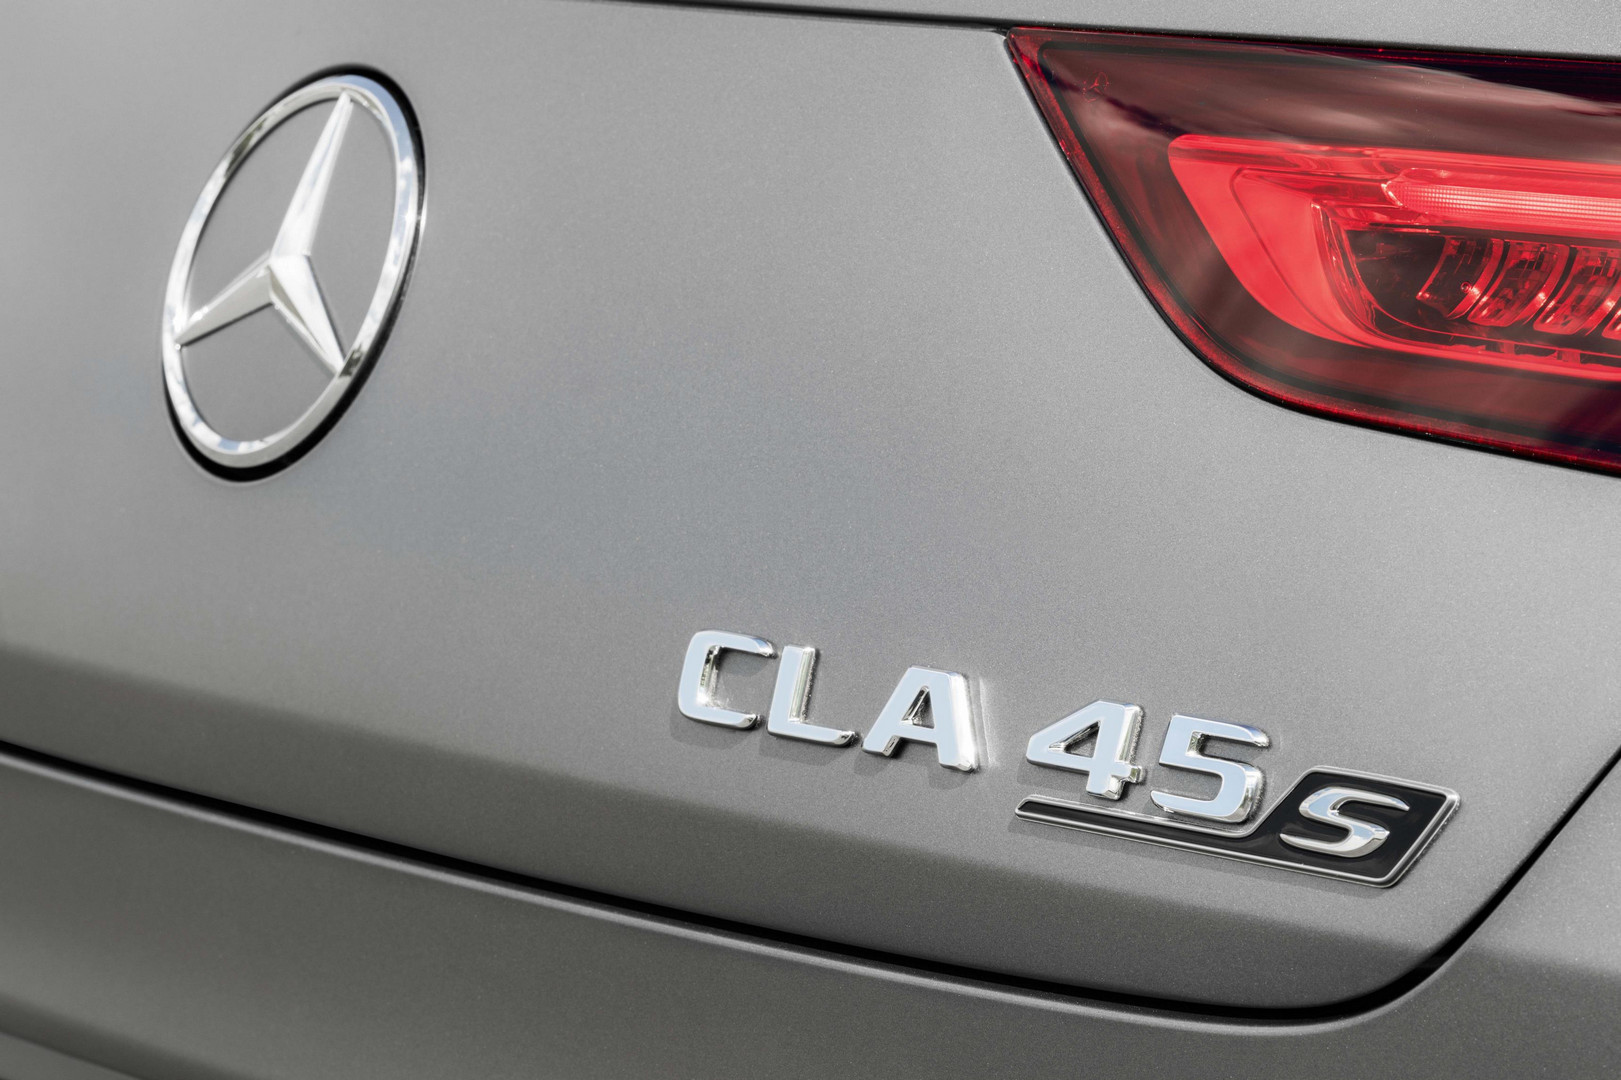 CLA 45 S AMG Badge